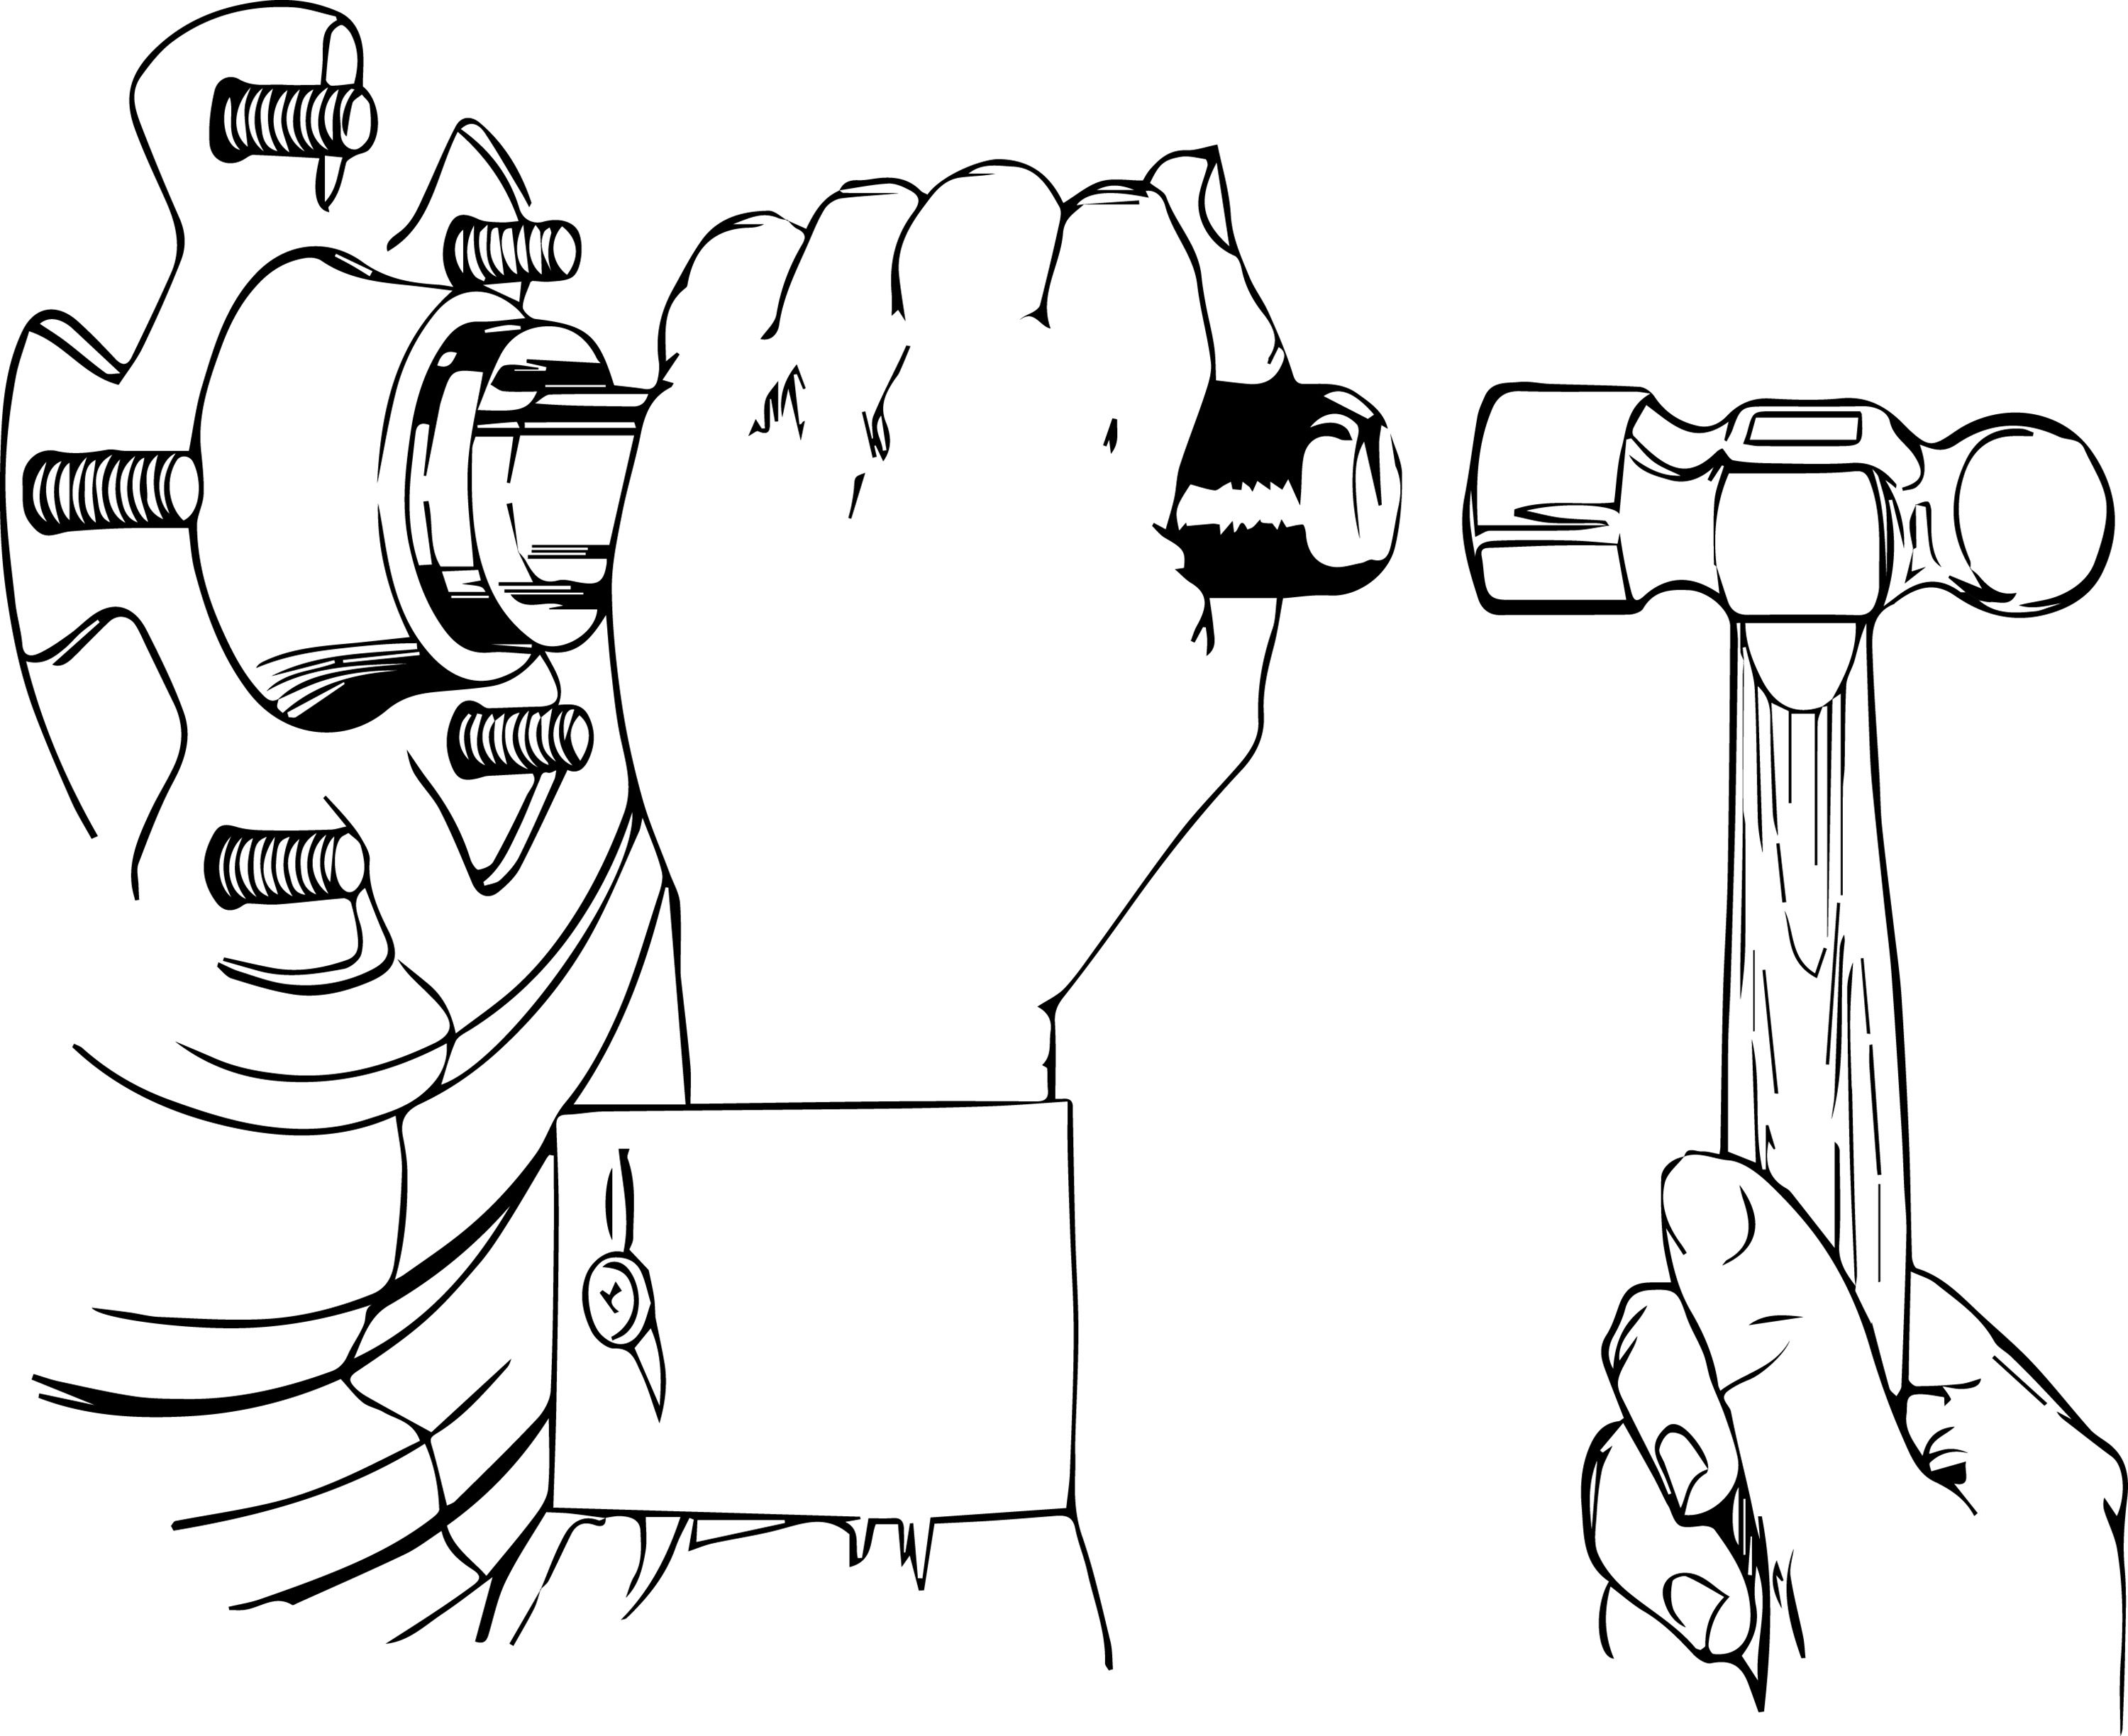 Lisle 12820 Pneumatic Handle for Bearing Race and Seal Driver Set